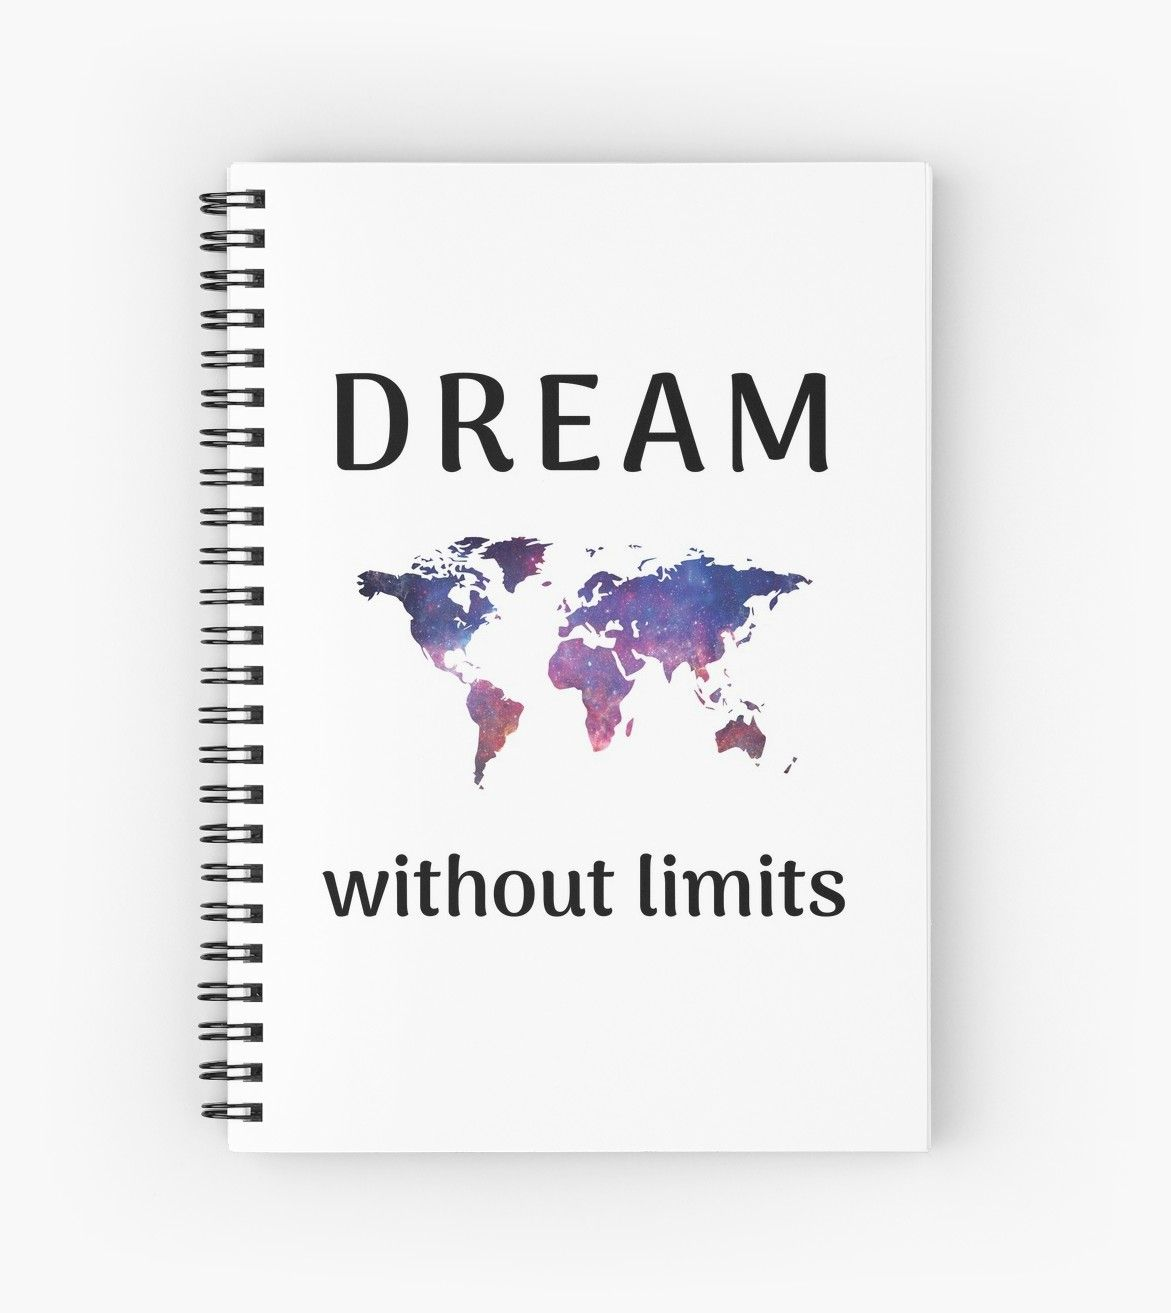 Dream Without Limits Spiral Notebook By Brightnomad Travel Journal Scrapbook Kids Travel Journal Vacation Journal